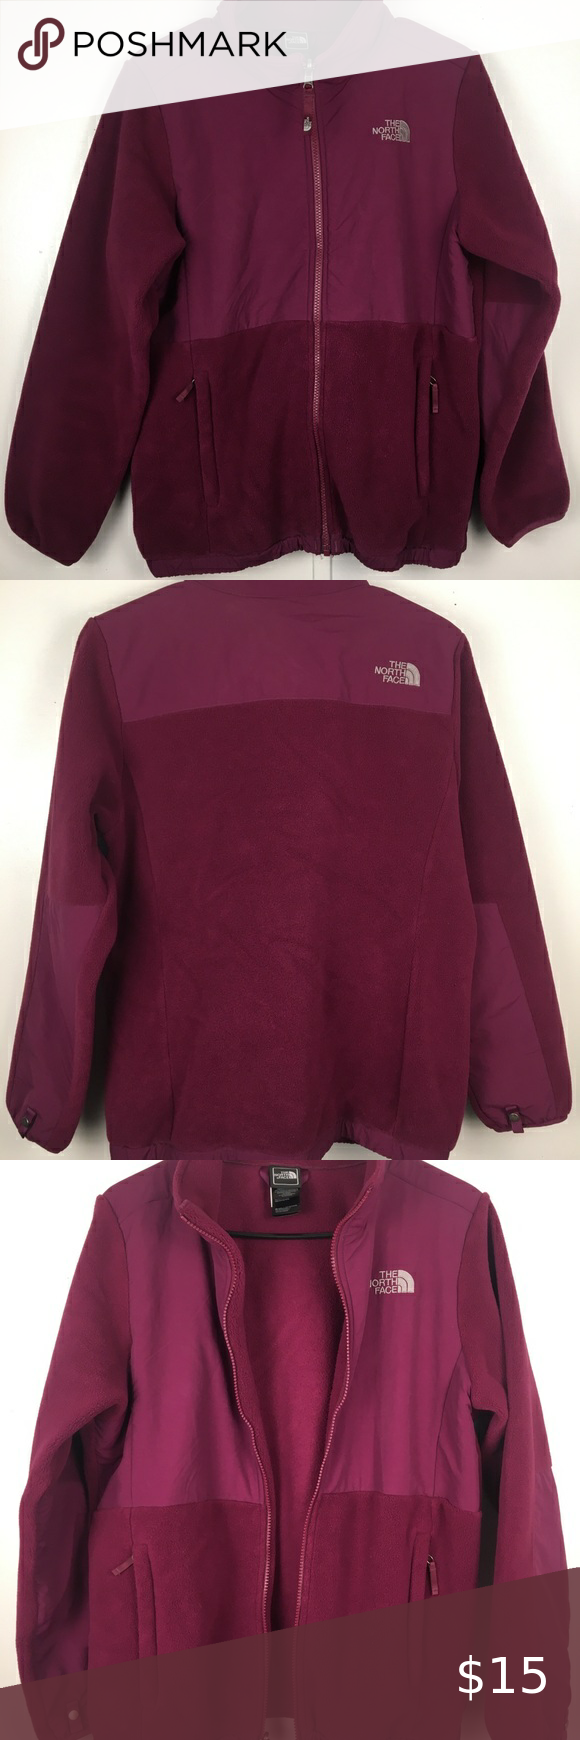 The North Face Girls Fleece Jacket North Face Jacket The North Face [ 1740 x 580 Pixel ]